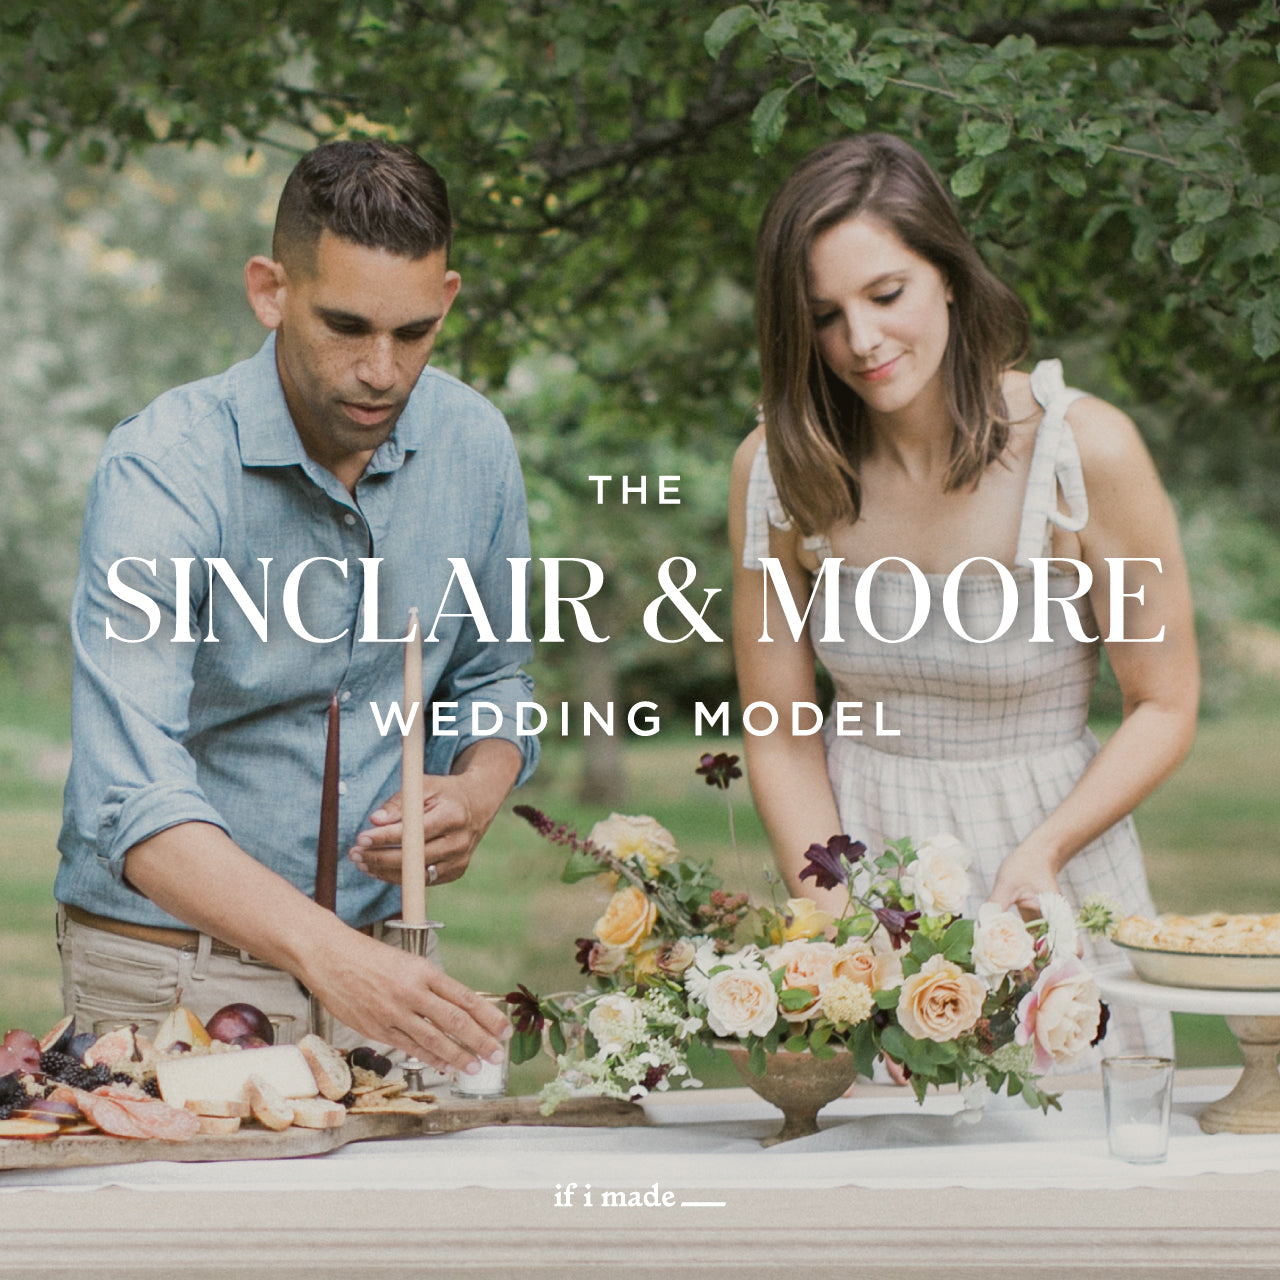 Payment Plan Sale: The Sinclair & Moore Wedding Model - 13 Payments of $99